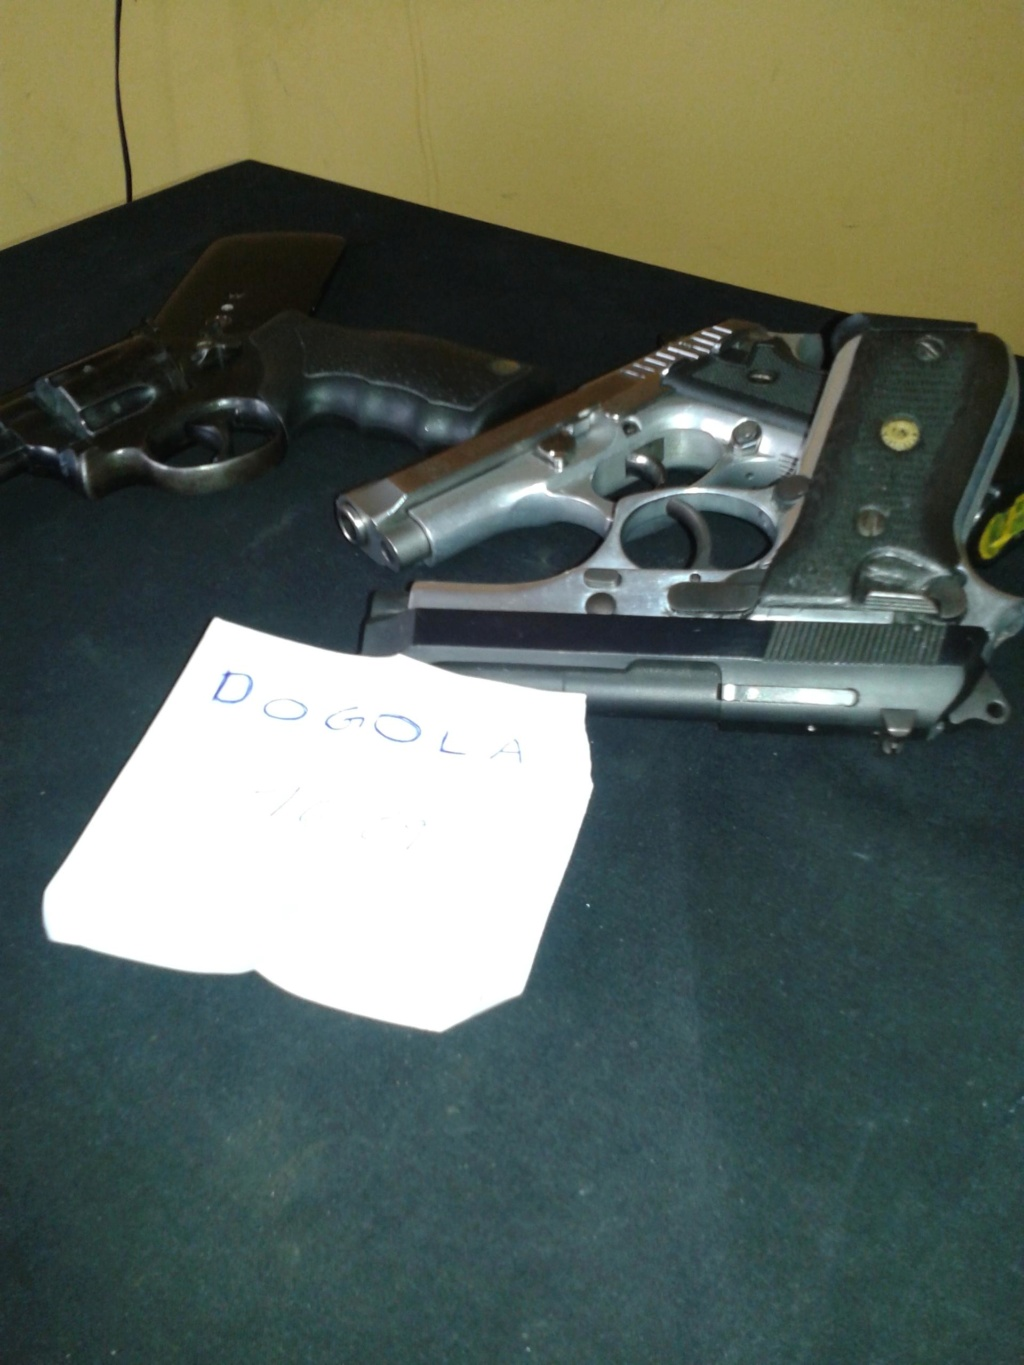 Photo's of mass murderer's weapons - Page 7 Dogola10